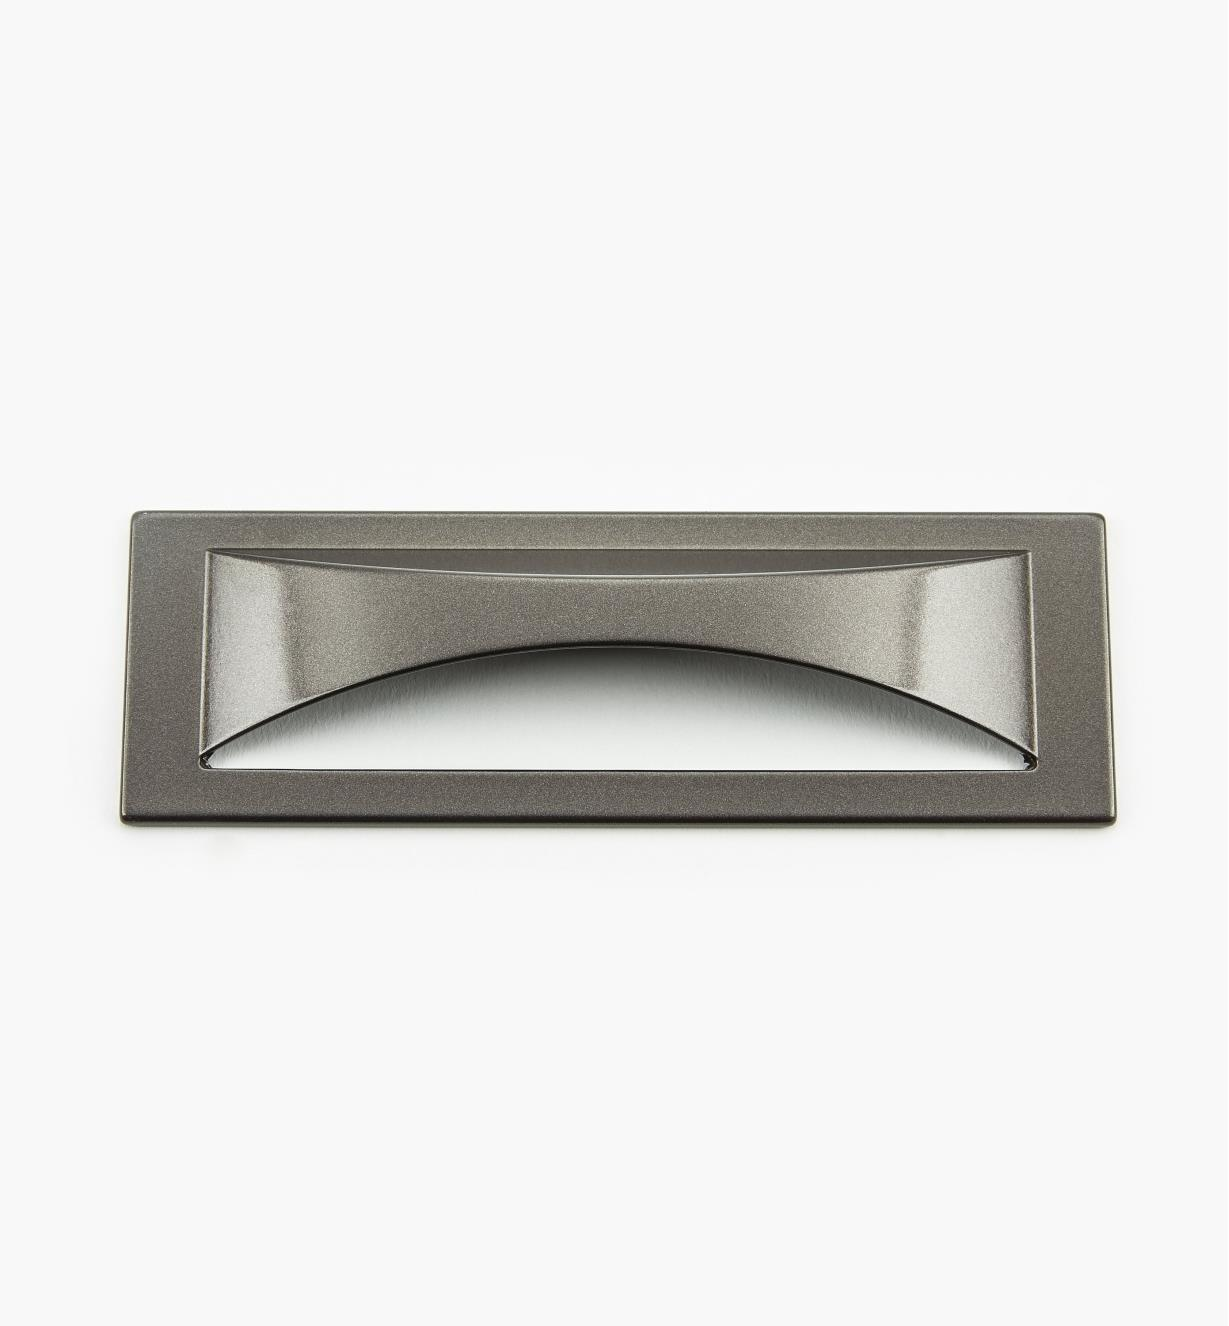 02W3982 - Mirano Dark Brown Framed Cup Pull